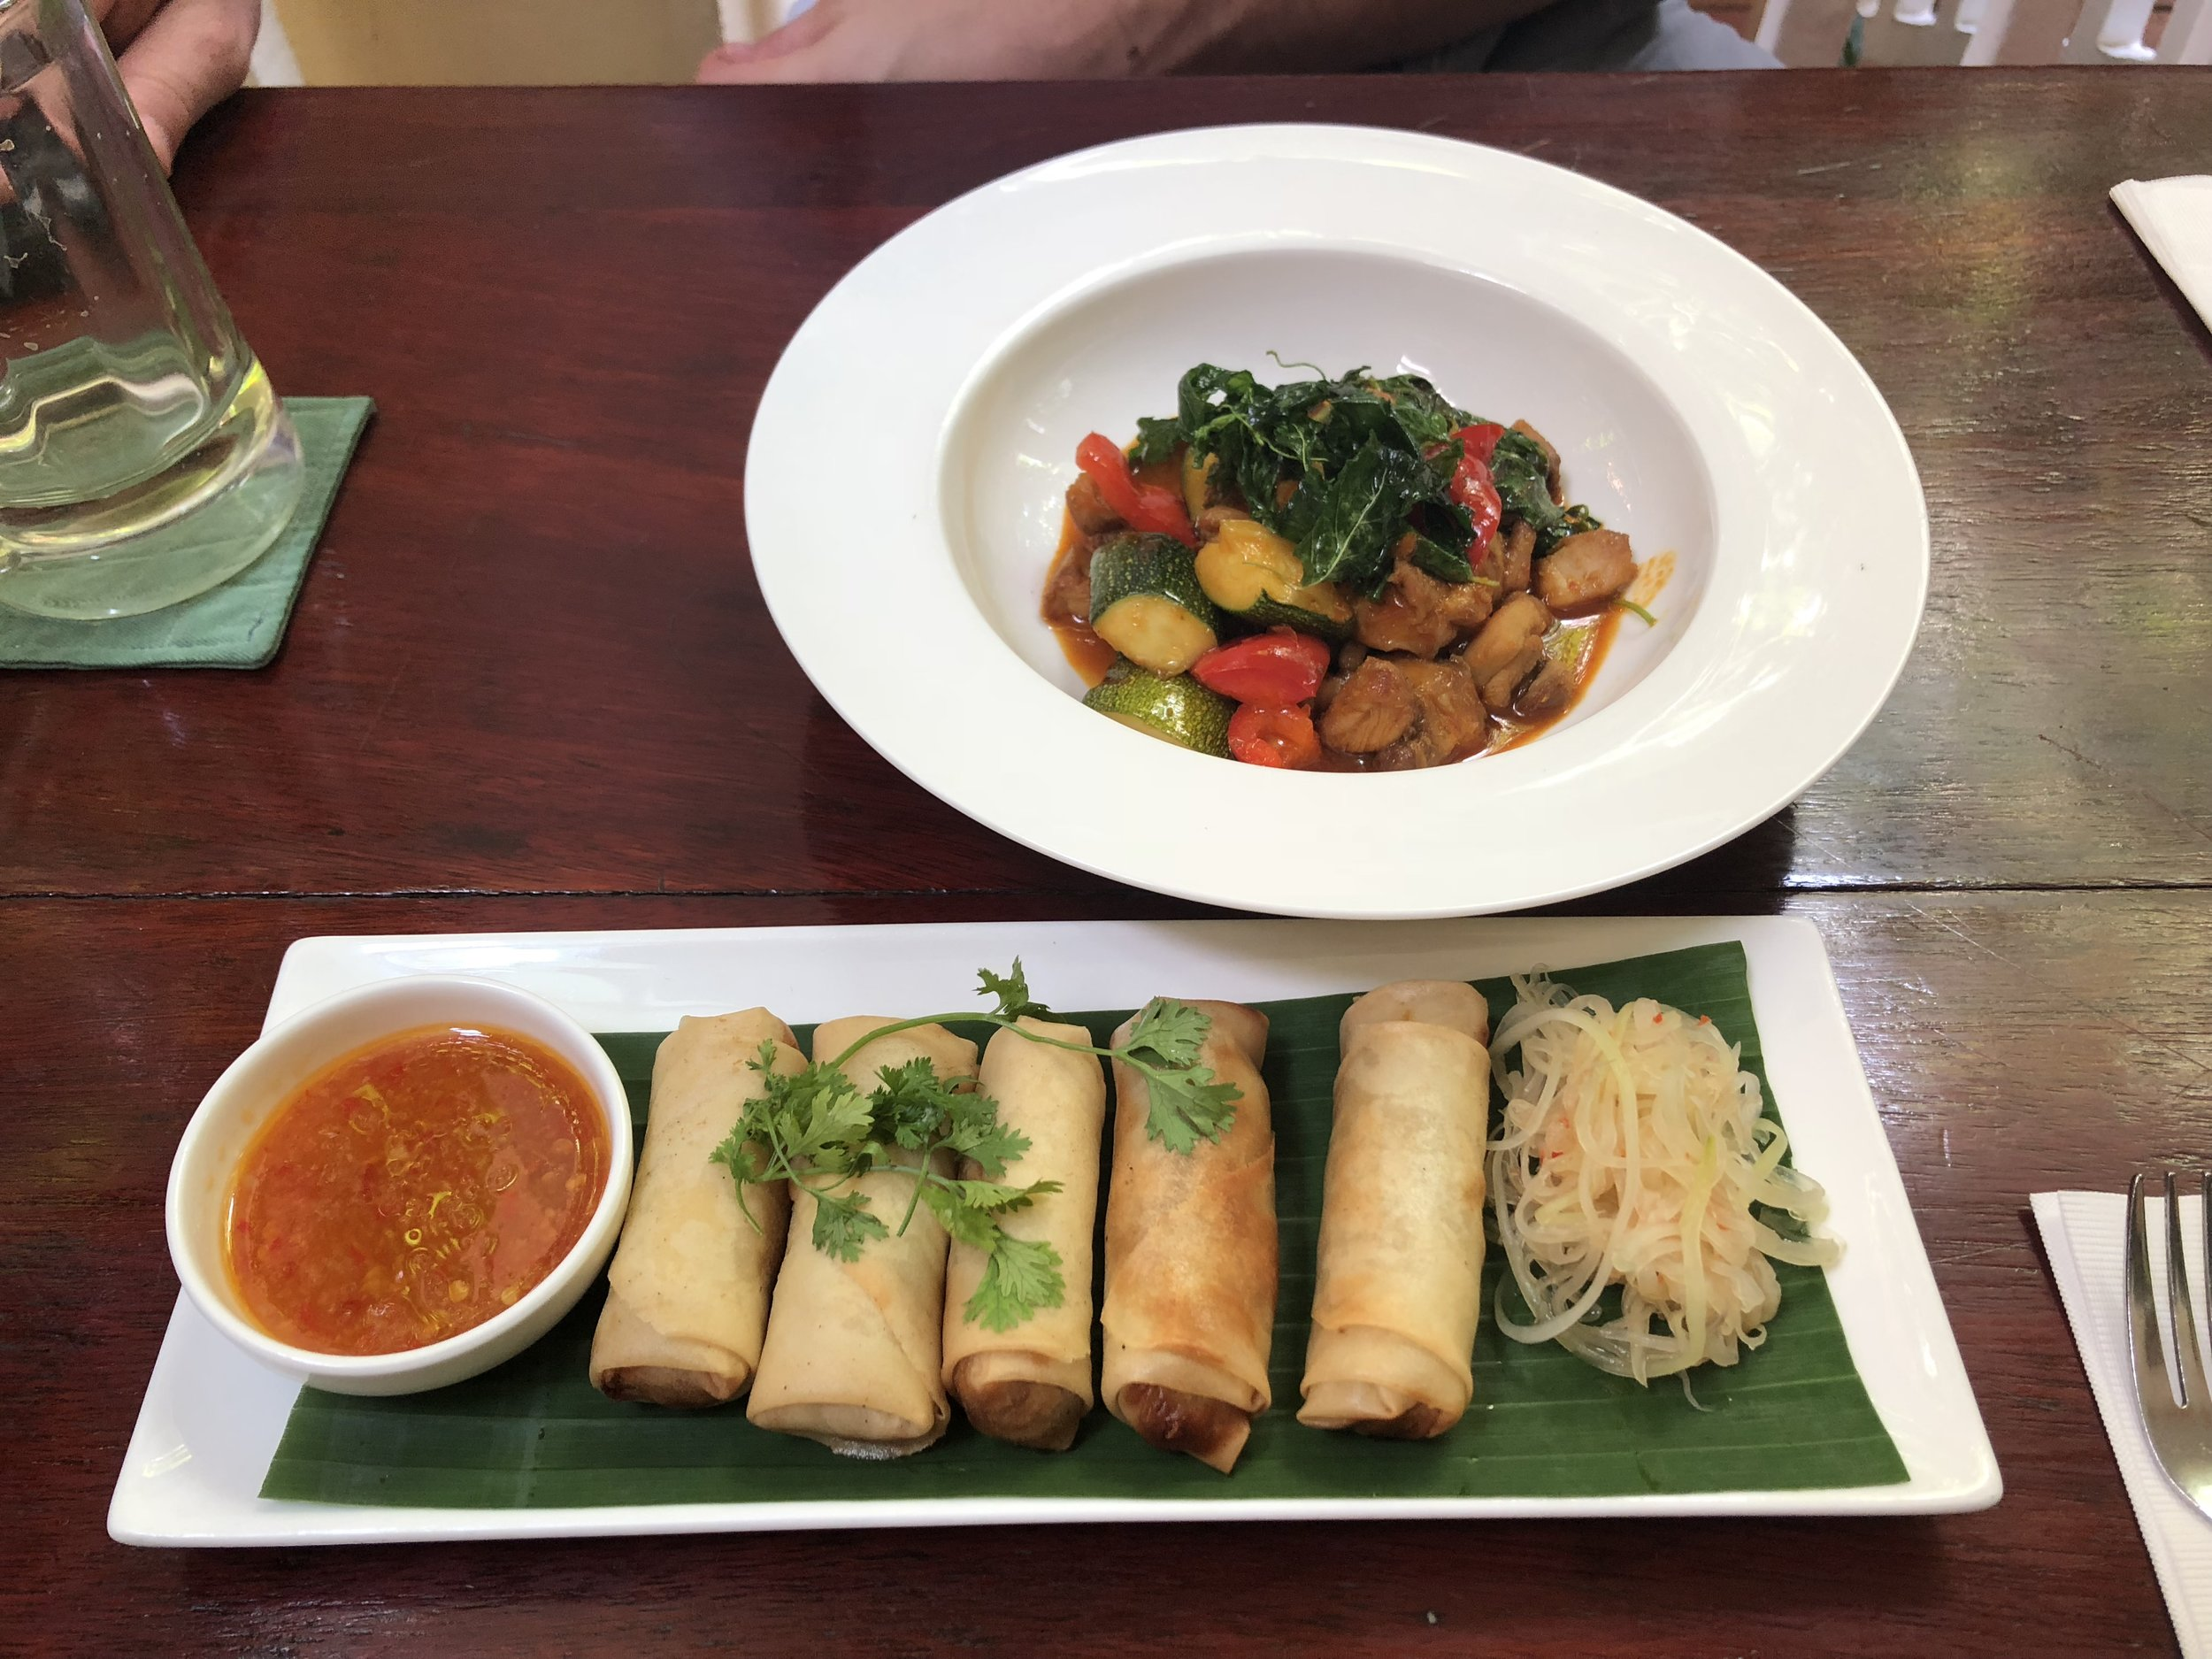 Our lunch of spring rolls and cashew chicken at Romdeng in Phnom Pehn.